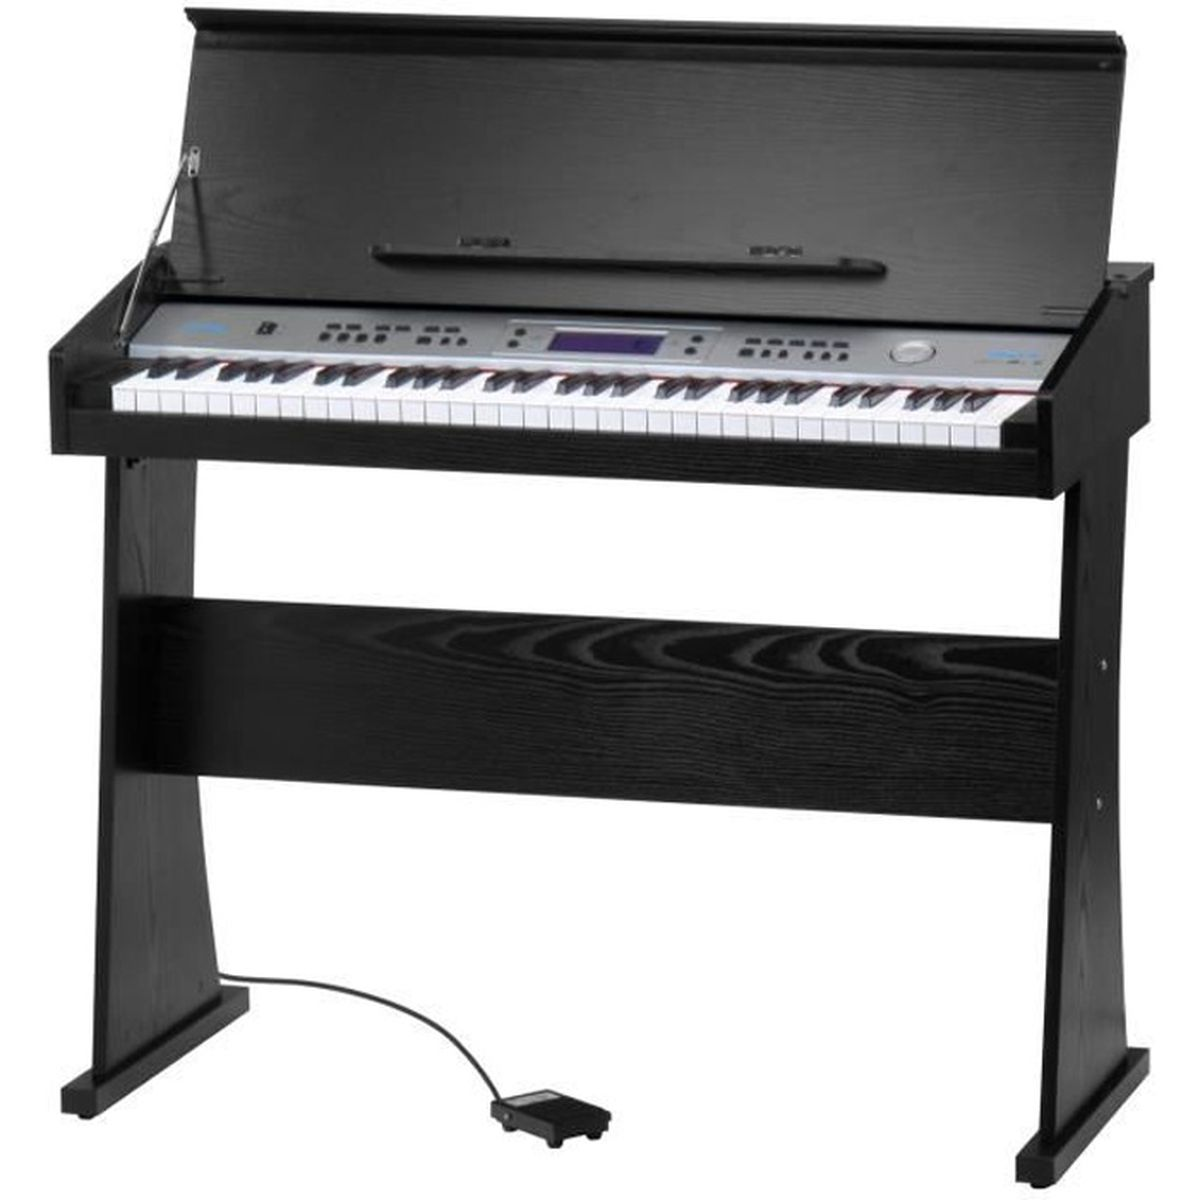 funkey dp 61 ii piano num rique support noir pas cher. Black Bedroom Furniture Sets. Home Design Ideas